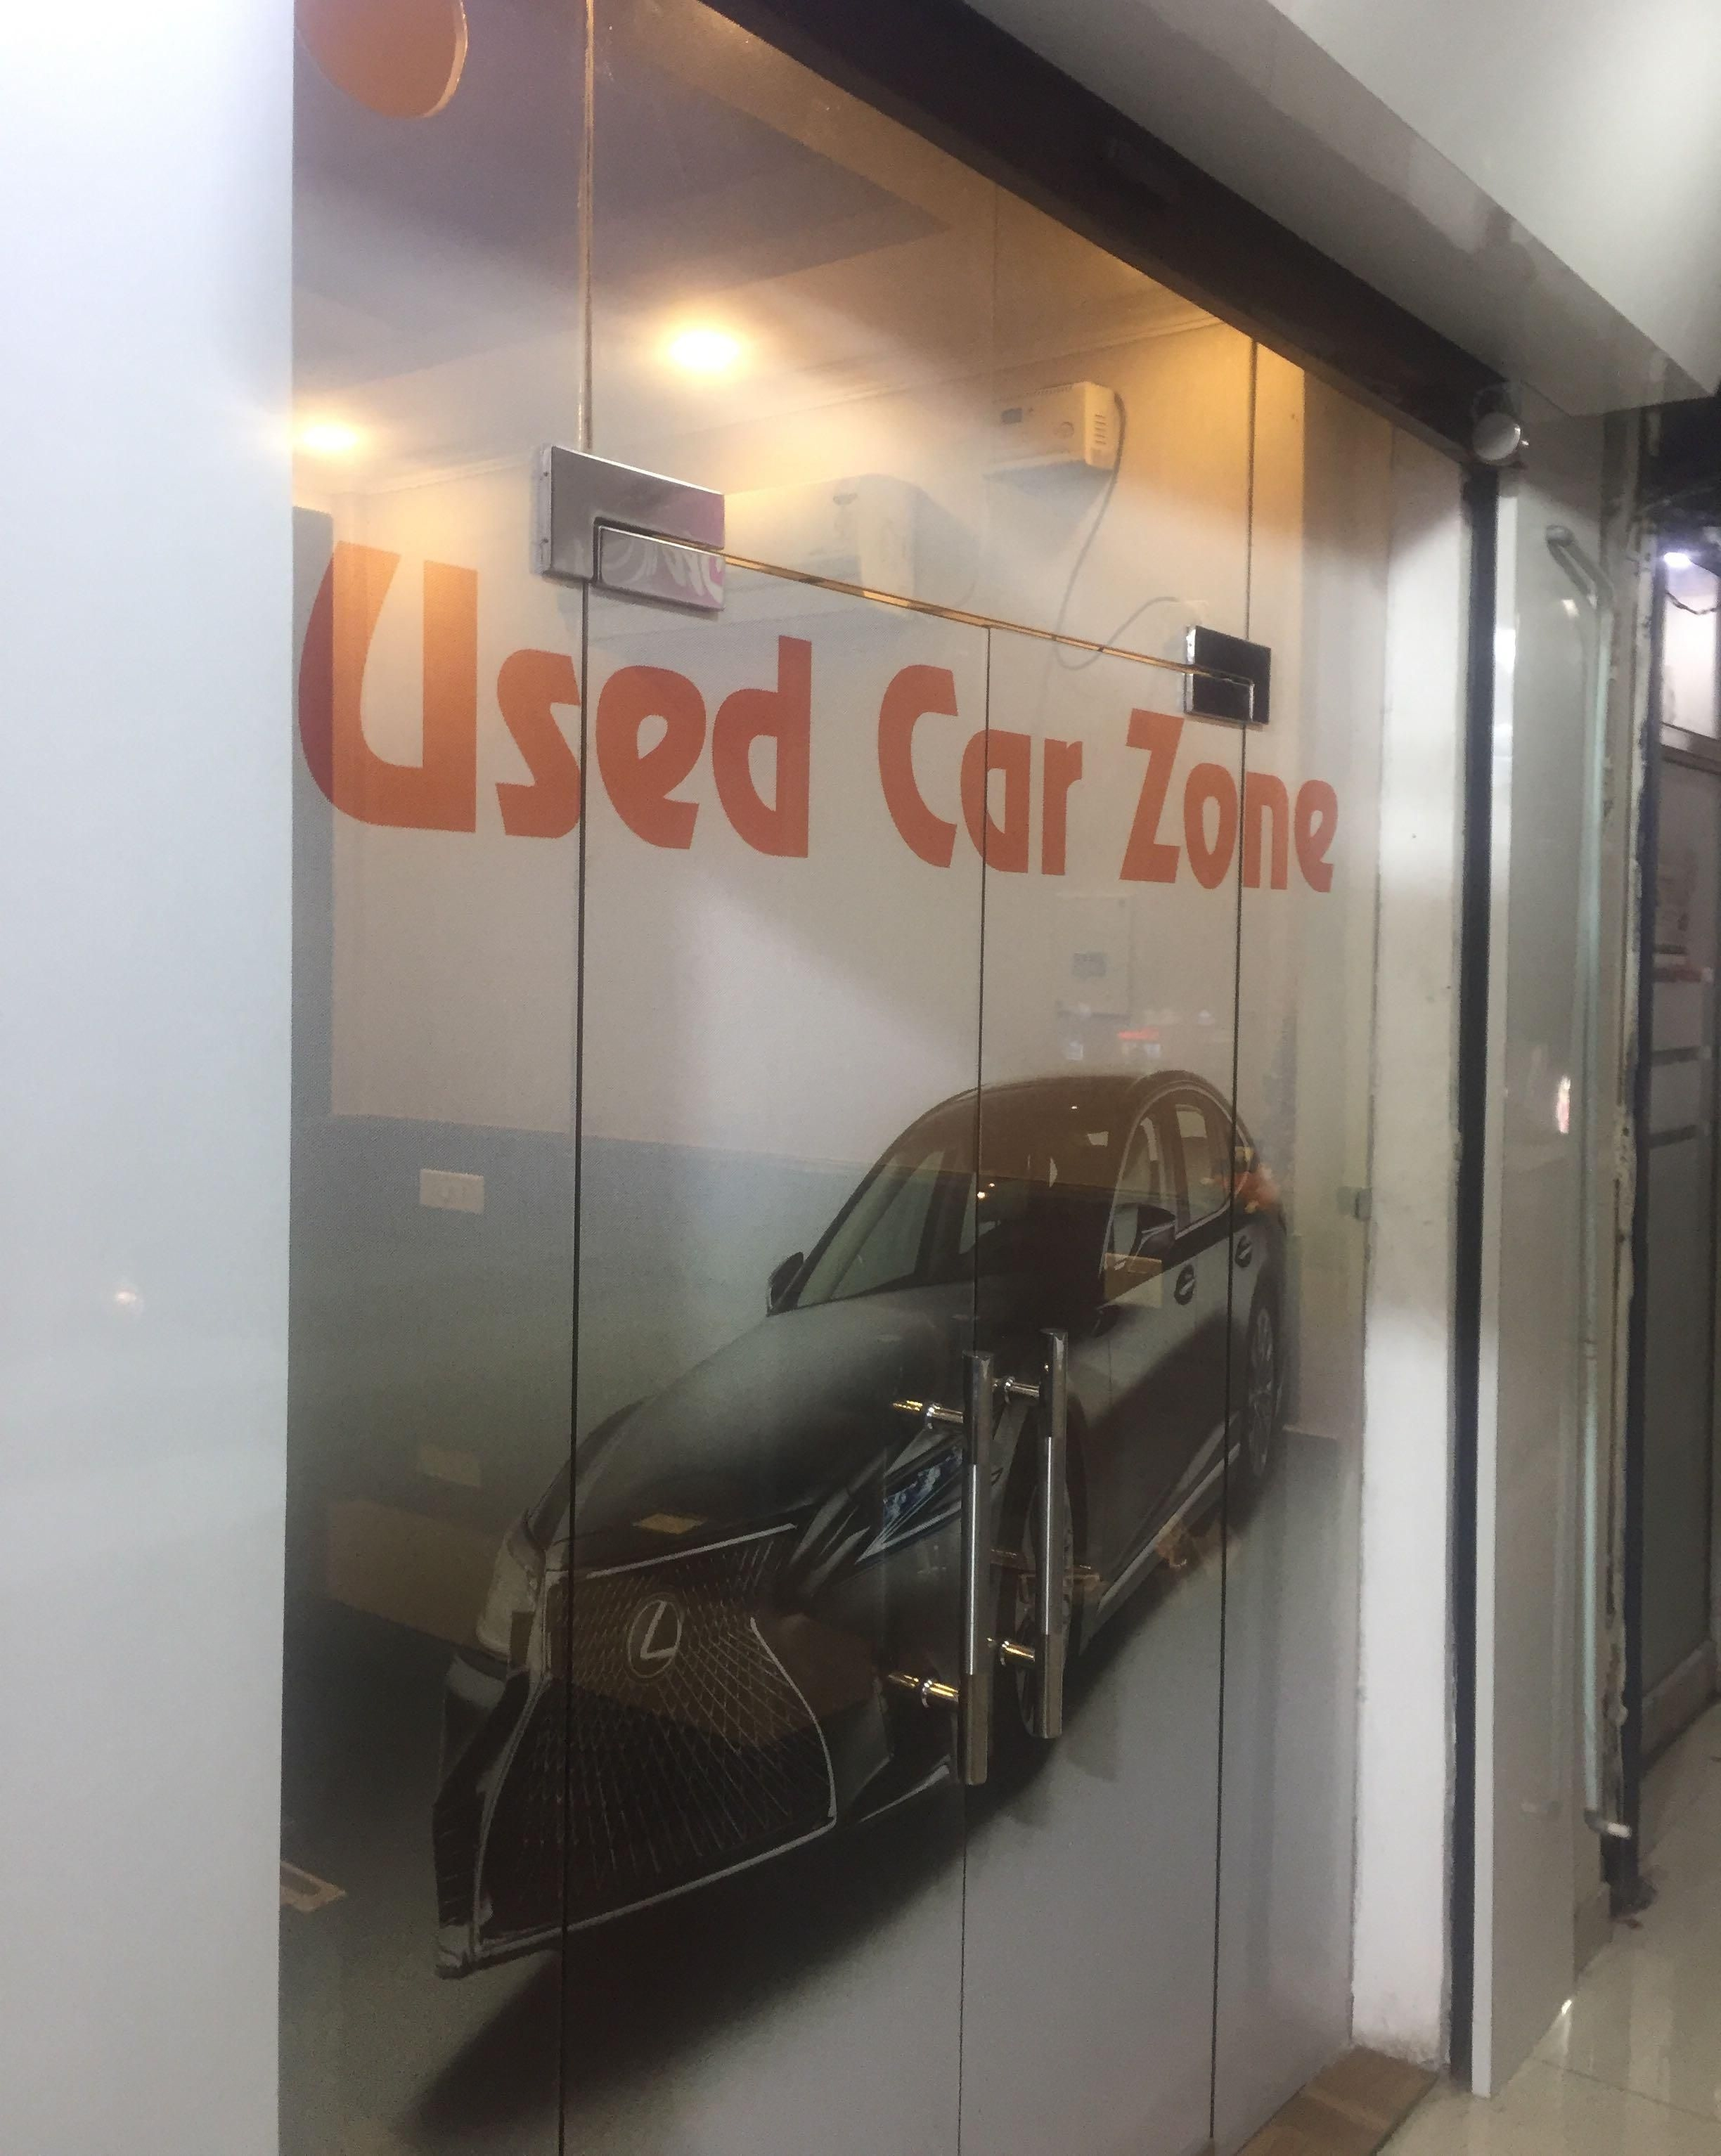 Used Car Zone